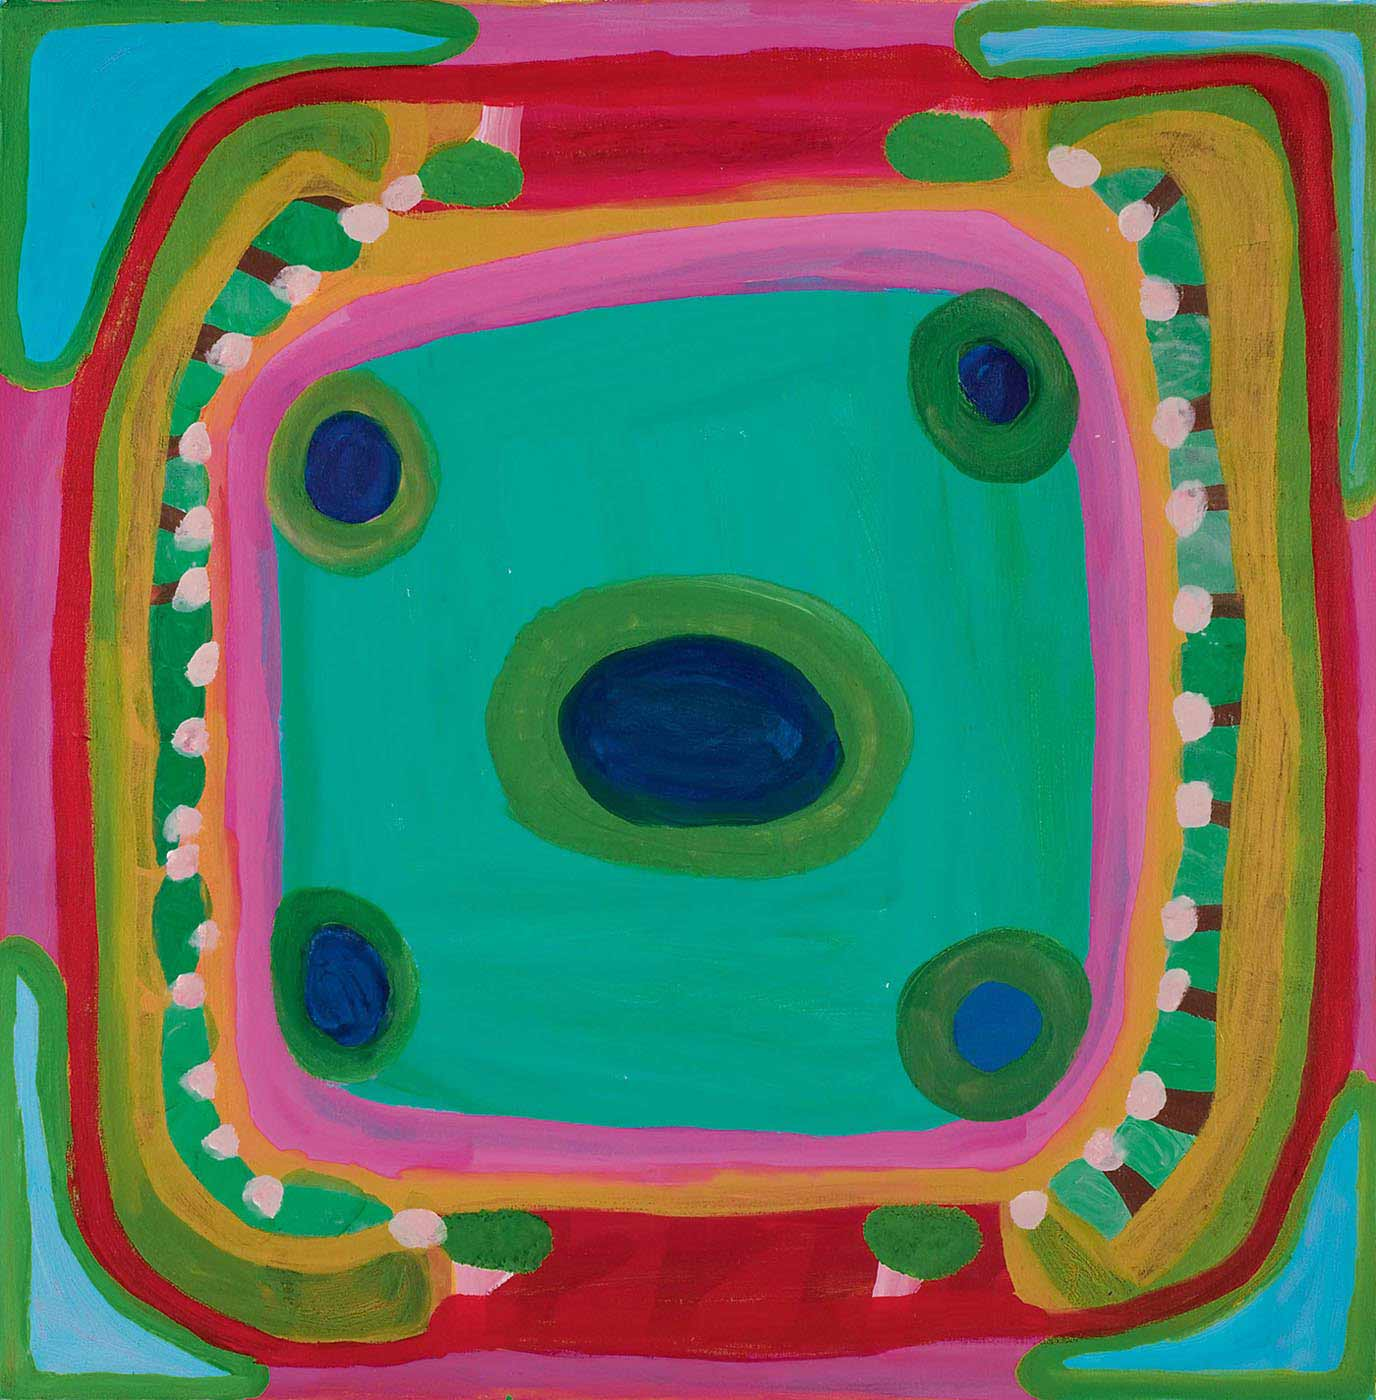 A multicoloured square painting on canvas with a dark blue oval inside a green border in the centre and four dark blue circles with green borders evenly spaced around it, on an aqua background. The centre is surrounded by borders in pink, orange, green, red and pale blue, with a row of brown and pink motifs running down both sides. The corners have a roughly triangular shape in light blue with a lime green border. - click to view larger image